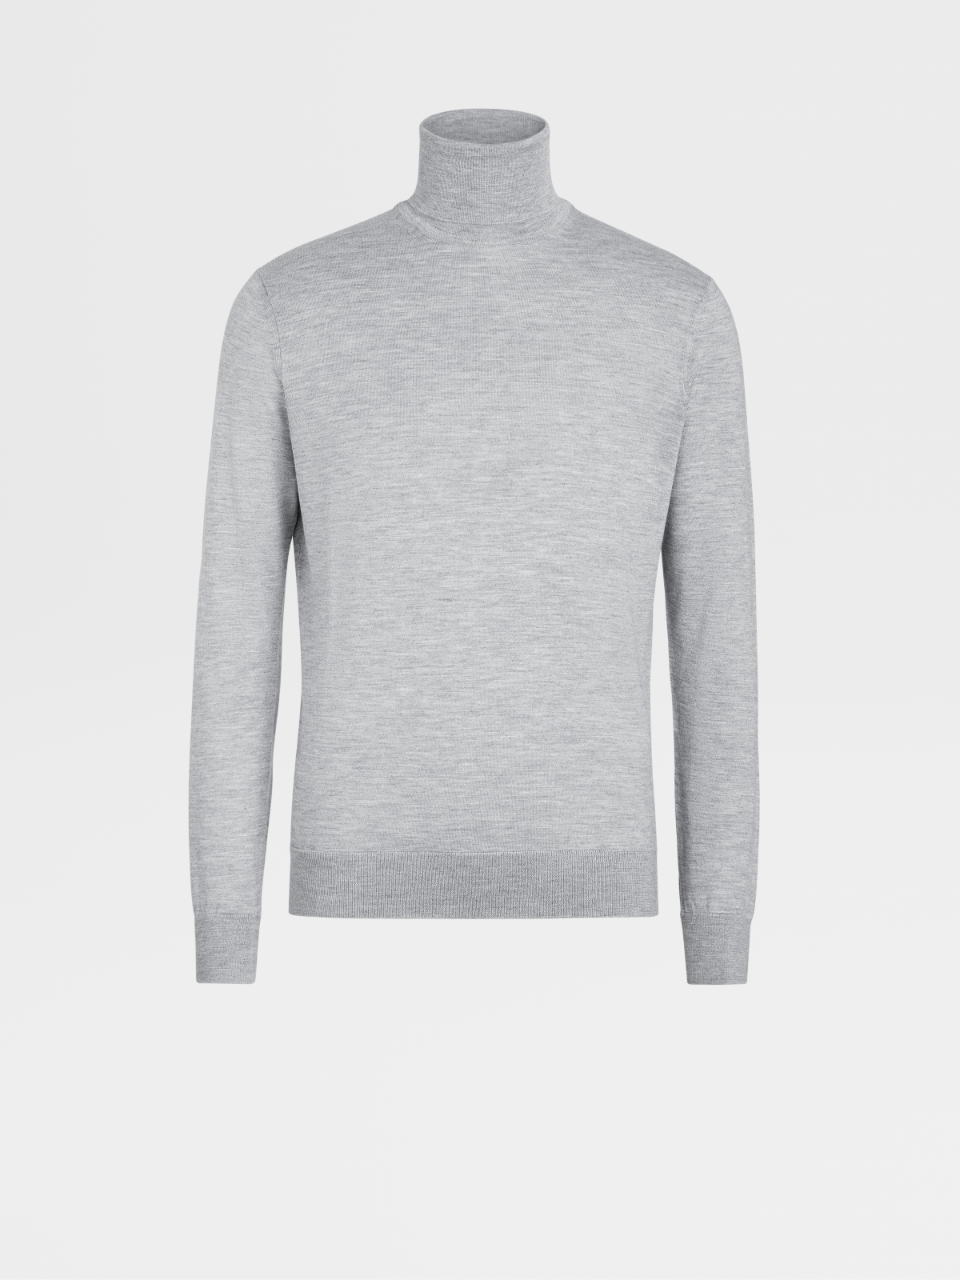 Cashseta Turtleneck